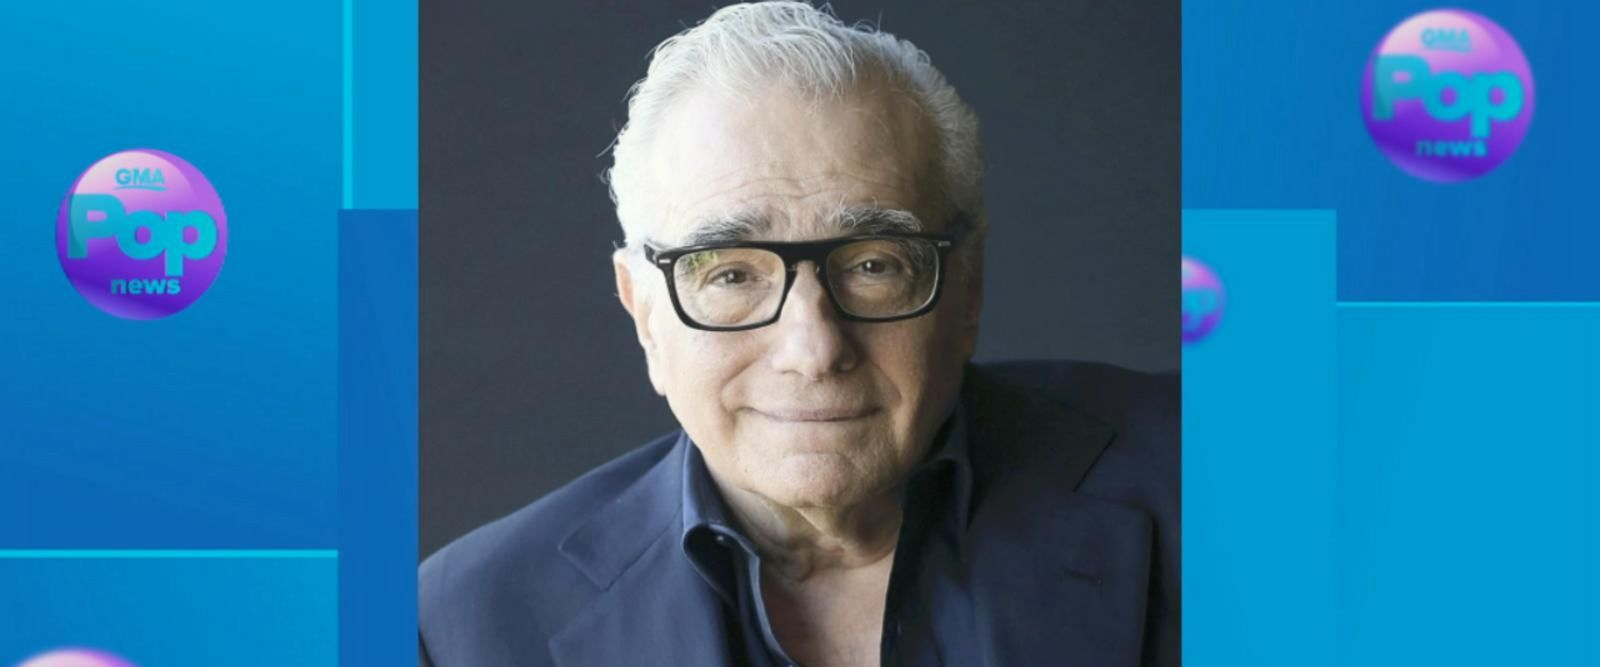 VIDEO: Martin Scorsese to teach filmmaking on masterclass.com